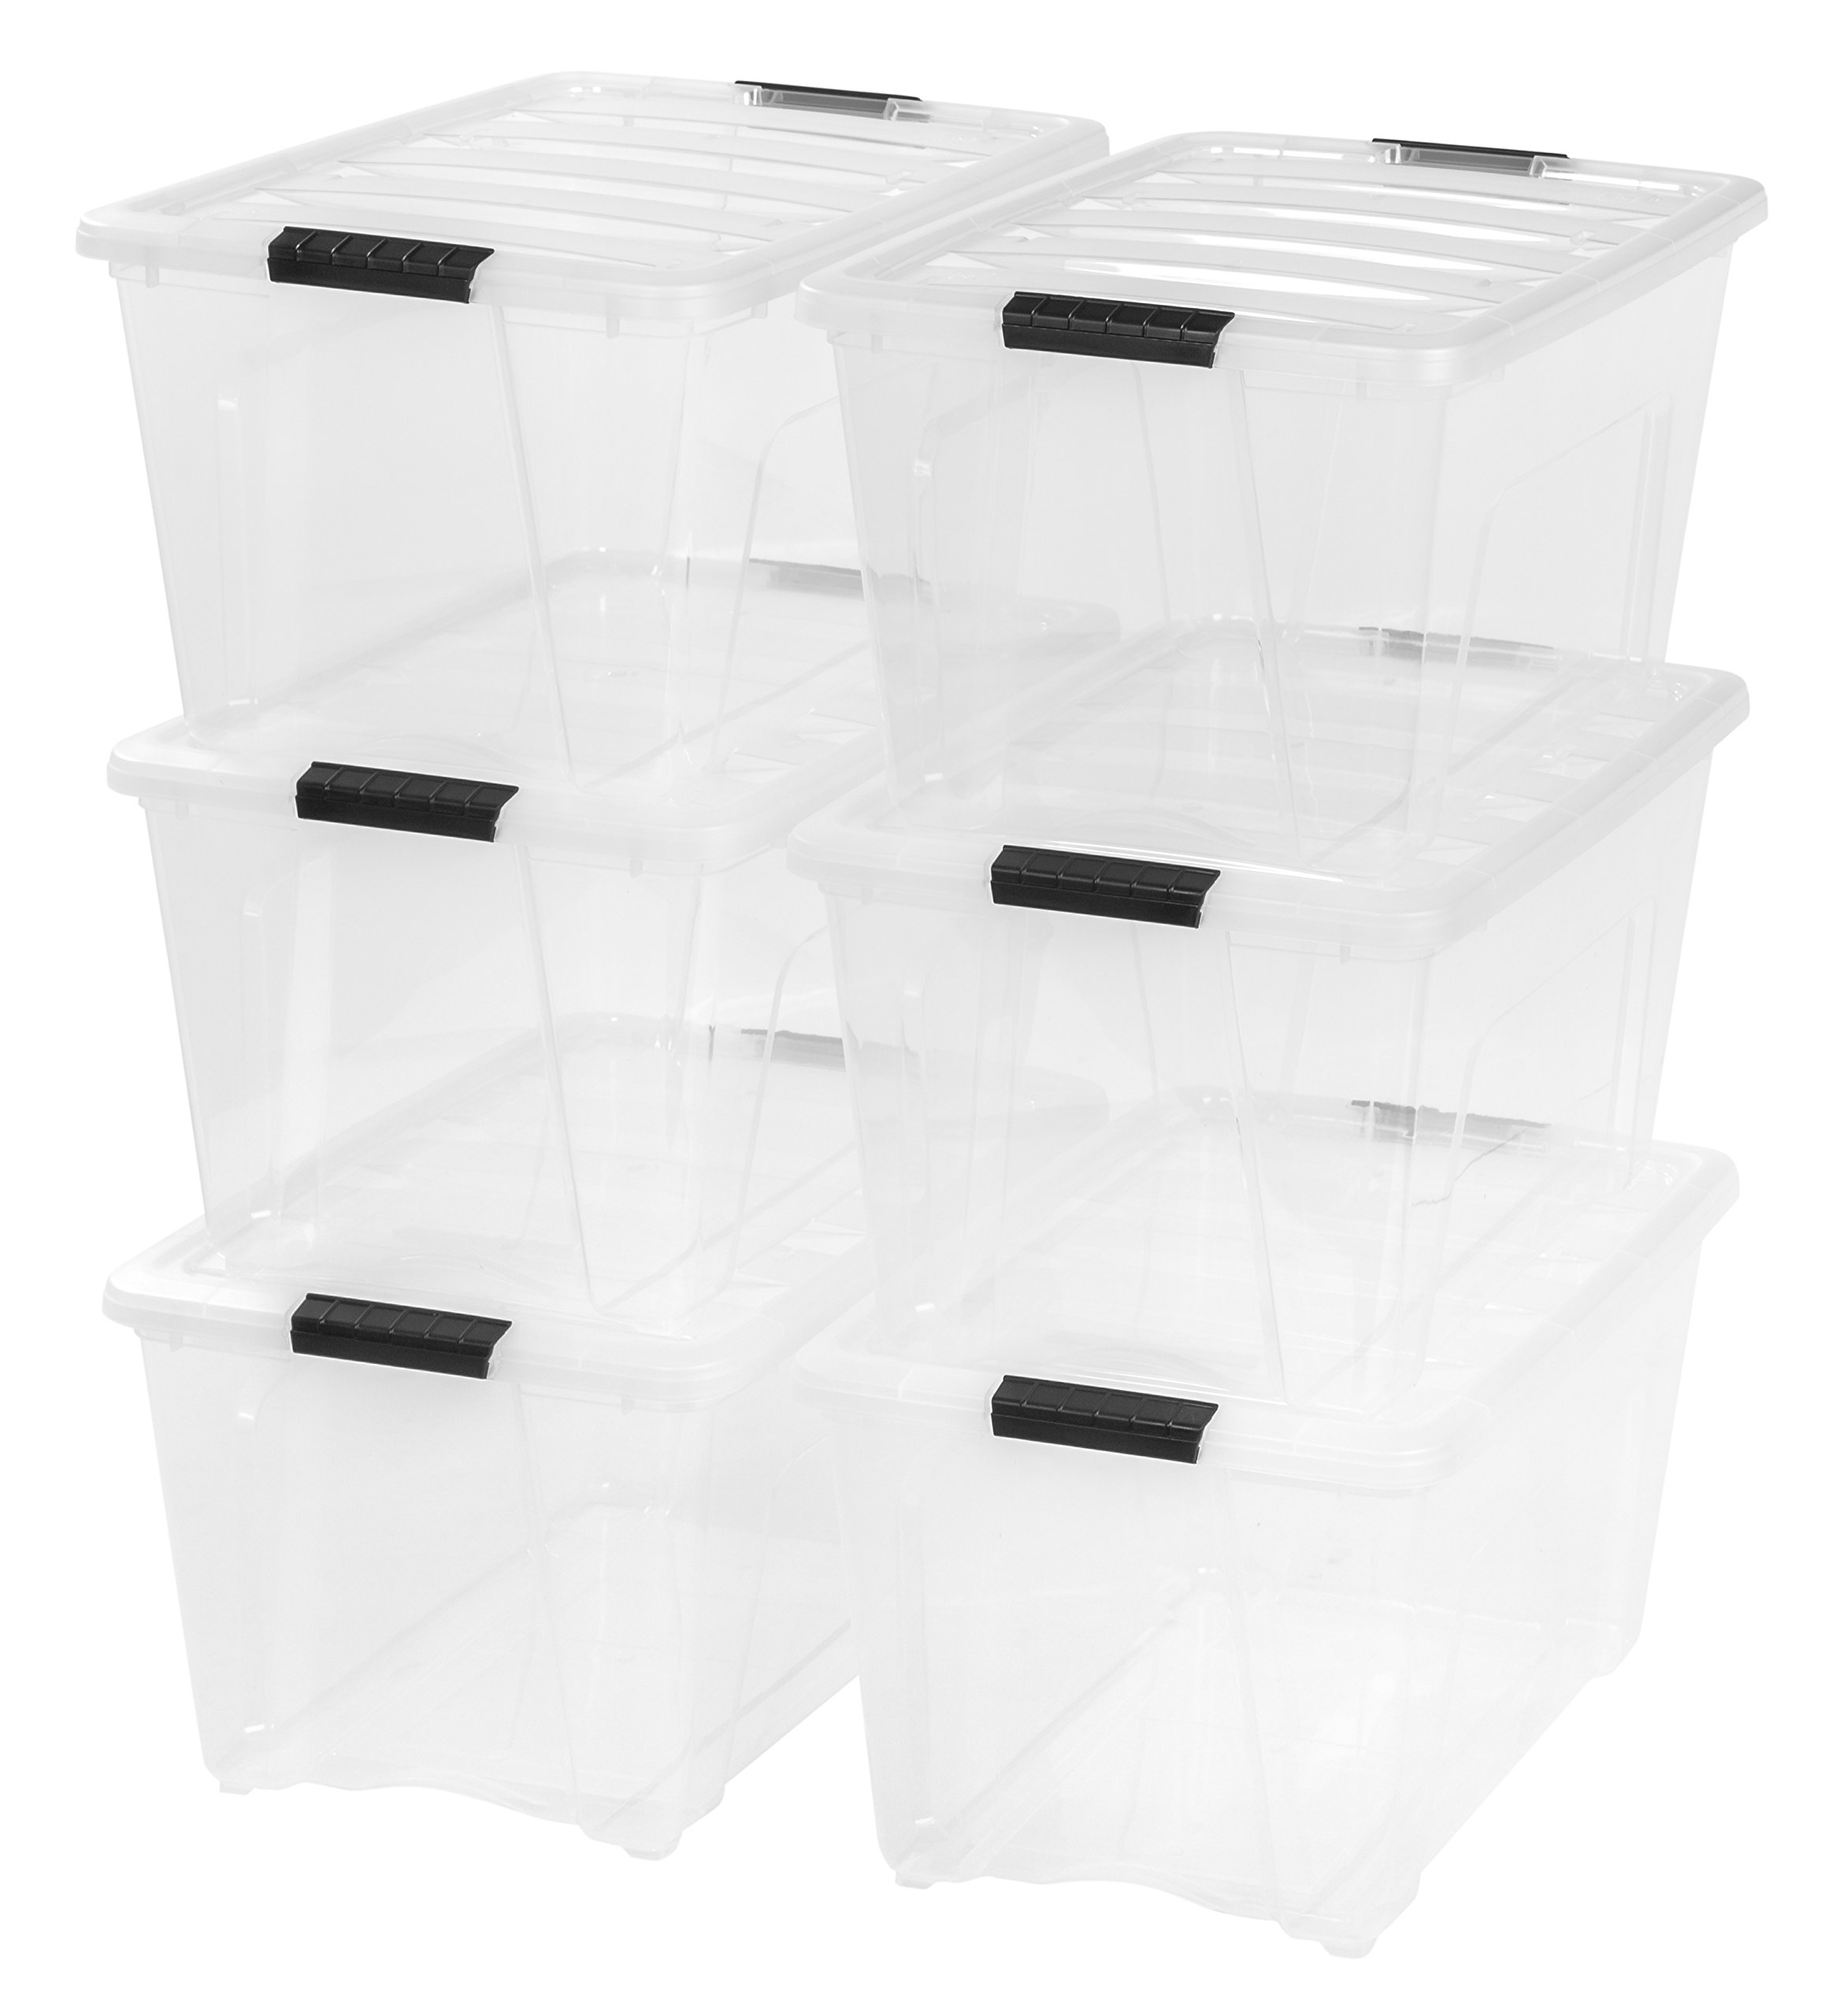 IRIS 53 Quart Stack & Pull Box, 6 Pack, Clear by IRIS USA, Inc.